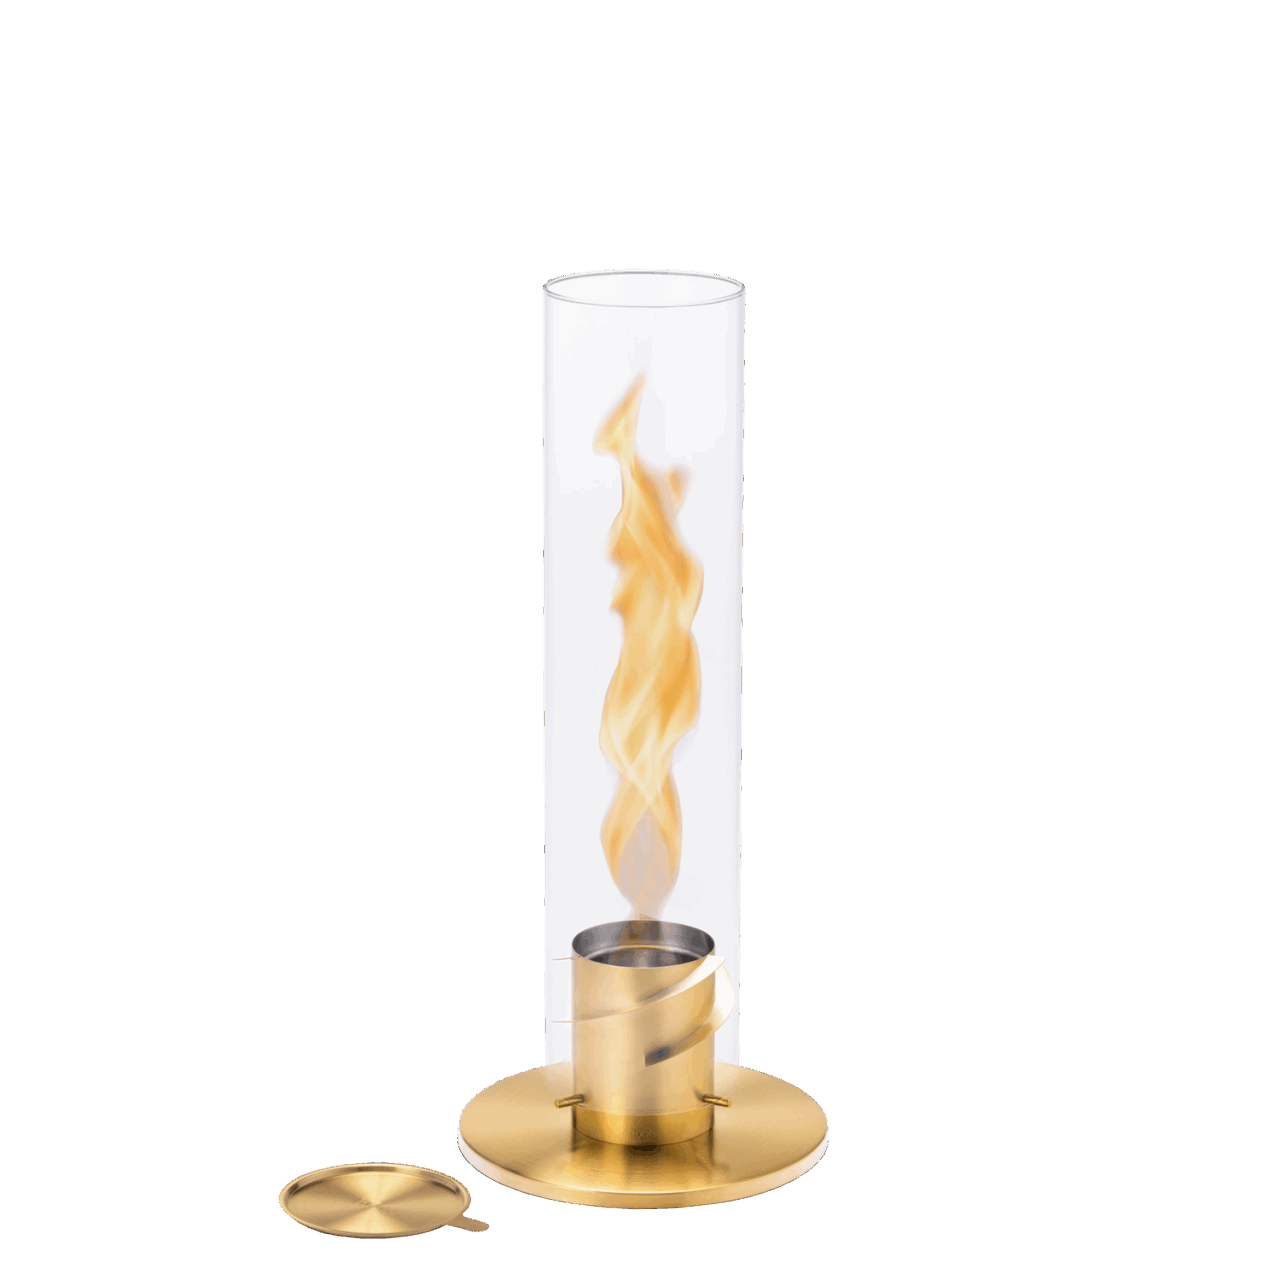 SPIN 90 Table Fire gold